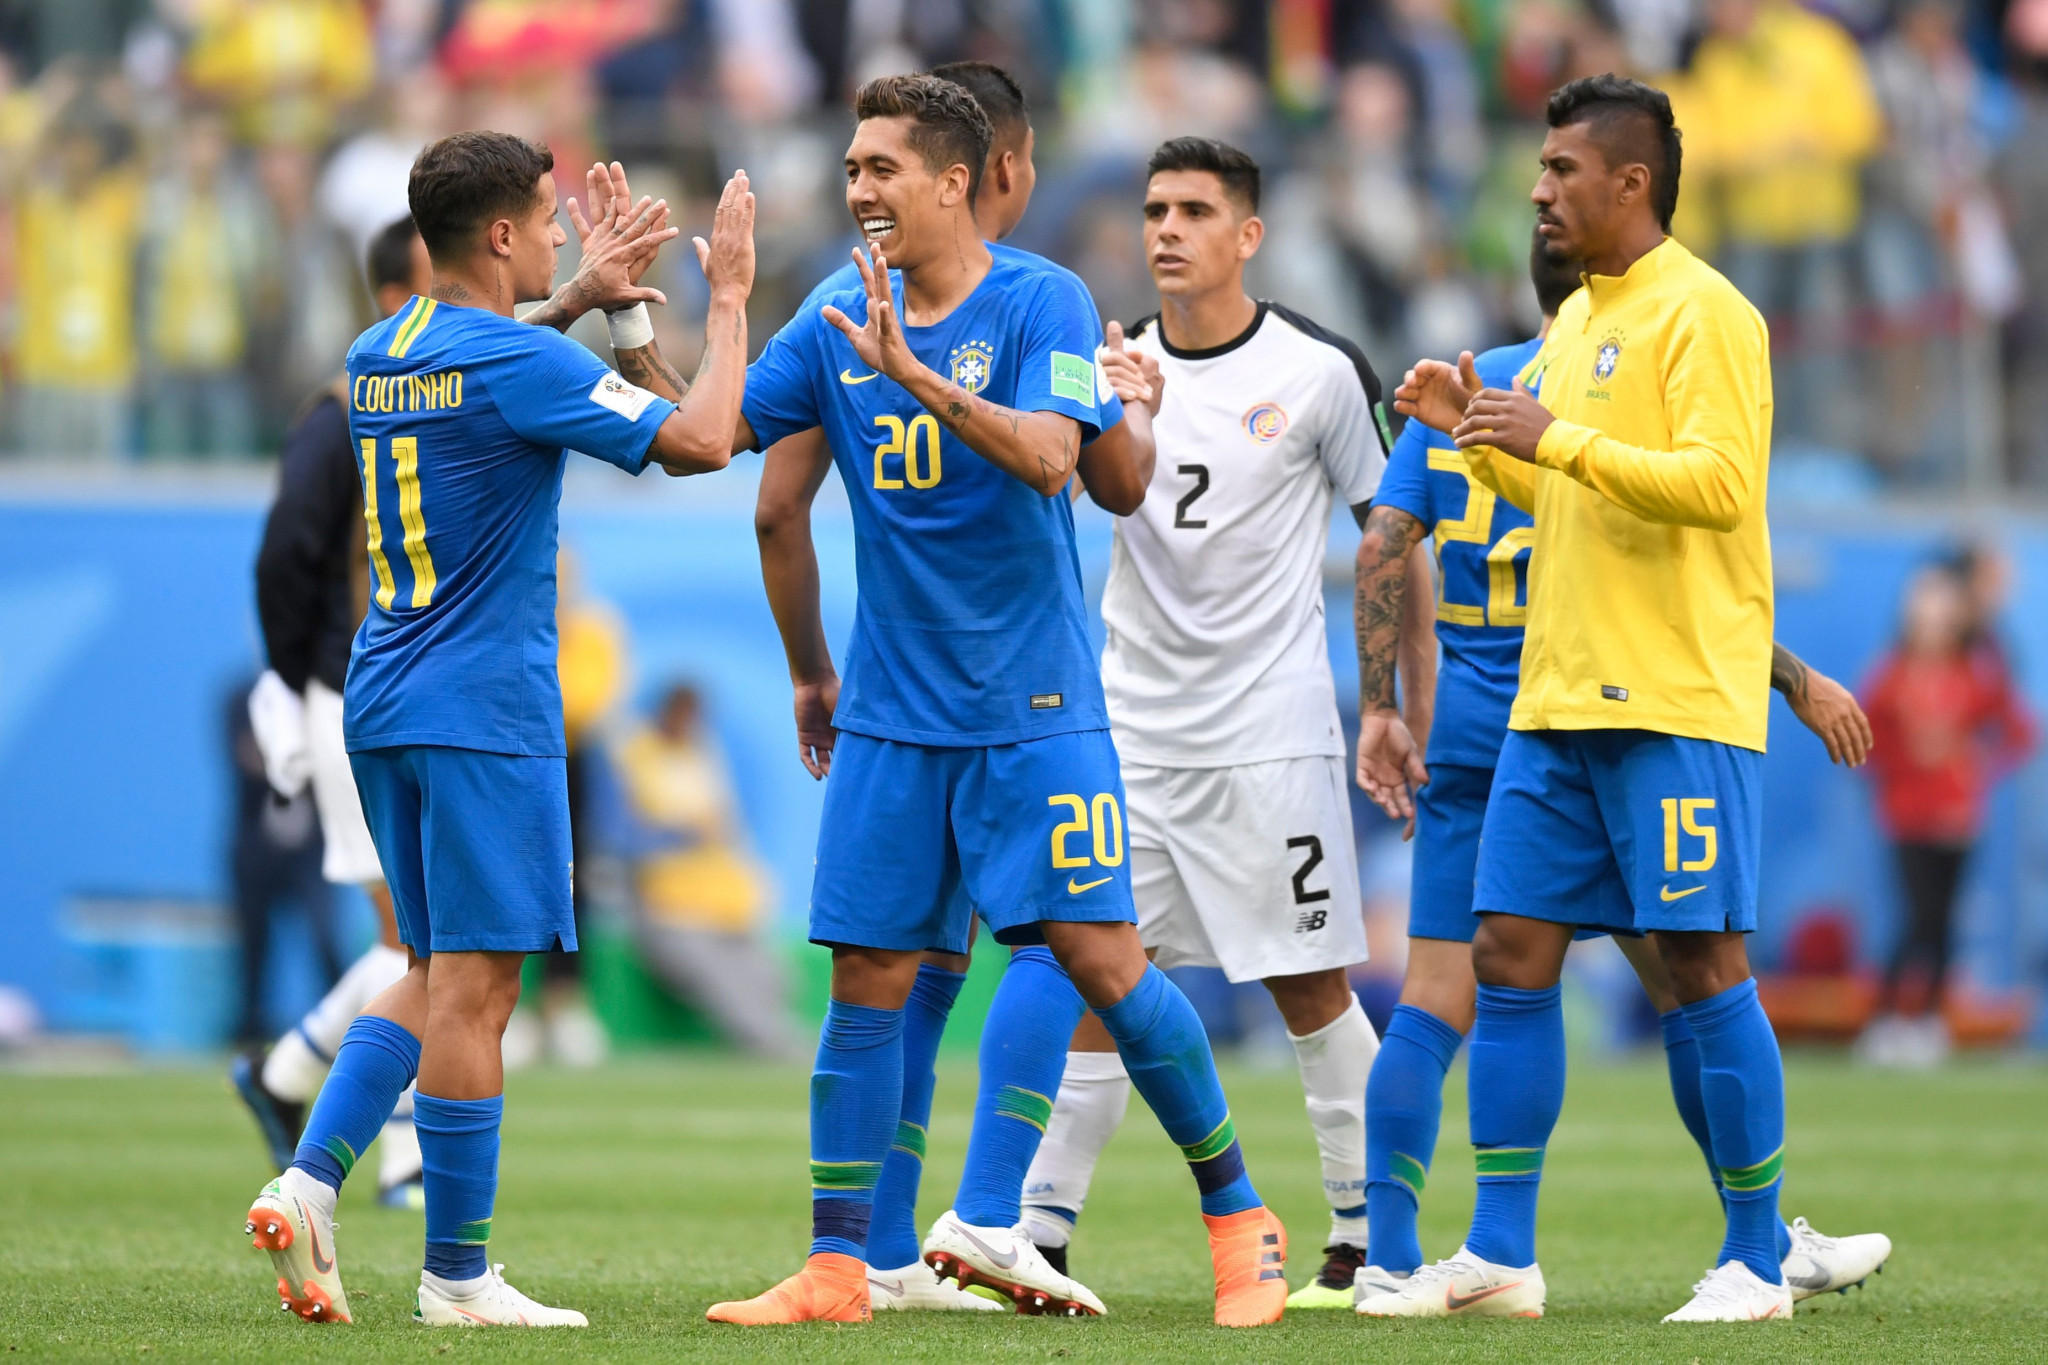 Brazil leave it late to claim victory over Costa Rica at FIFA World Cup